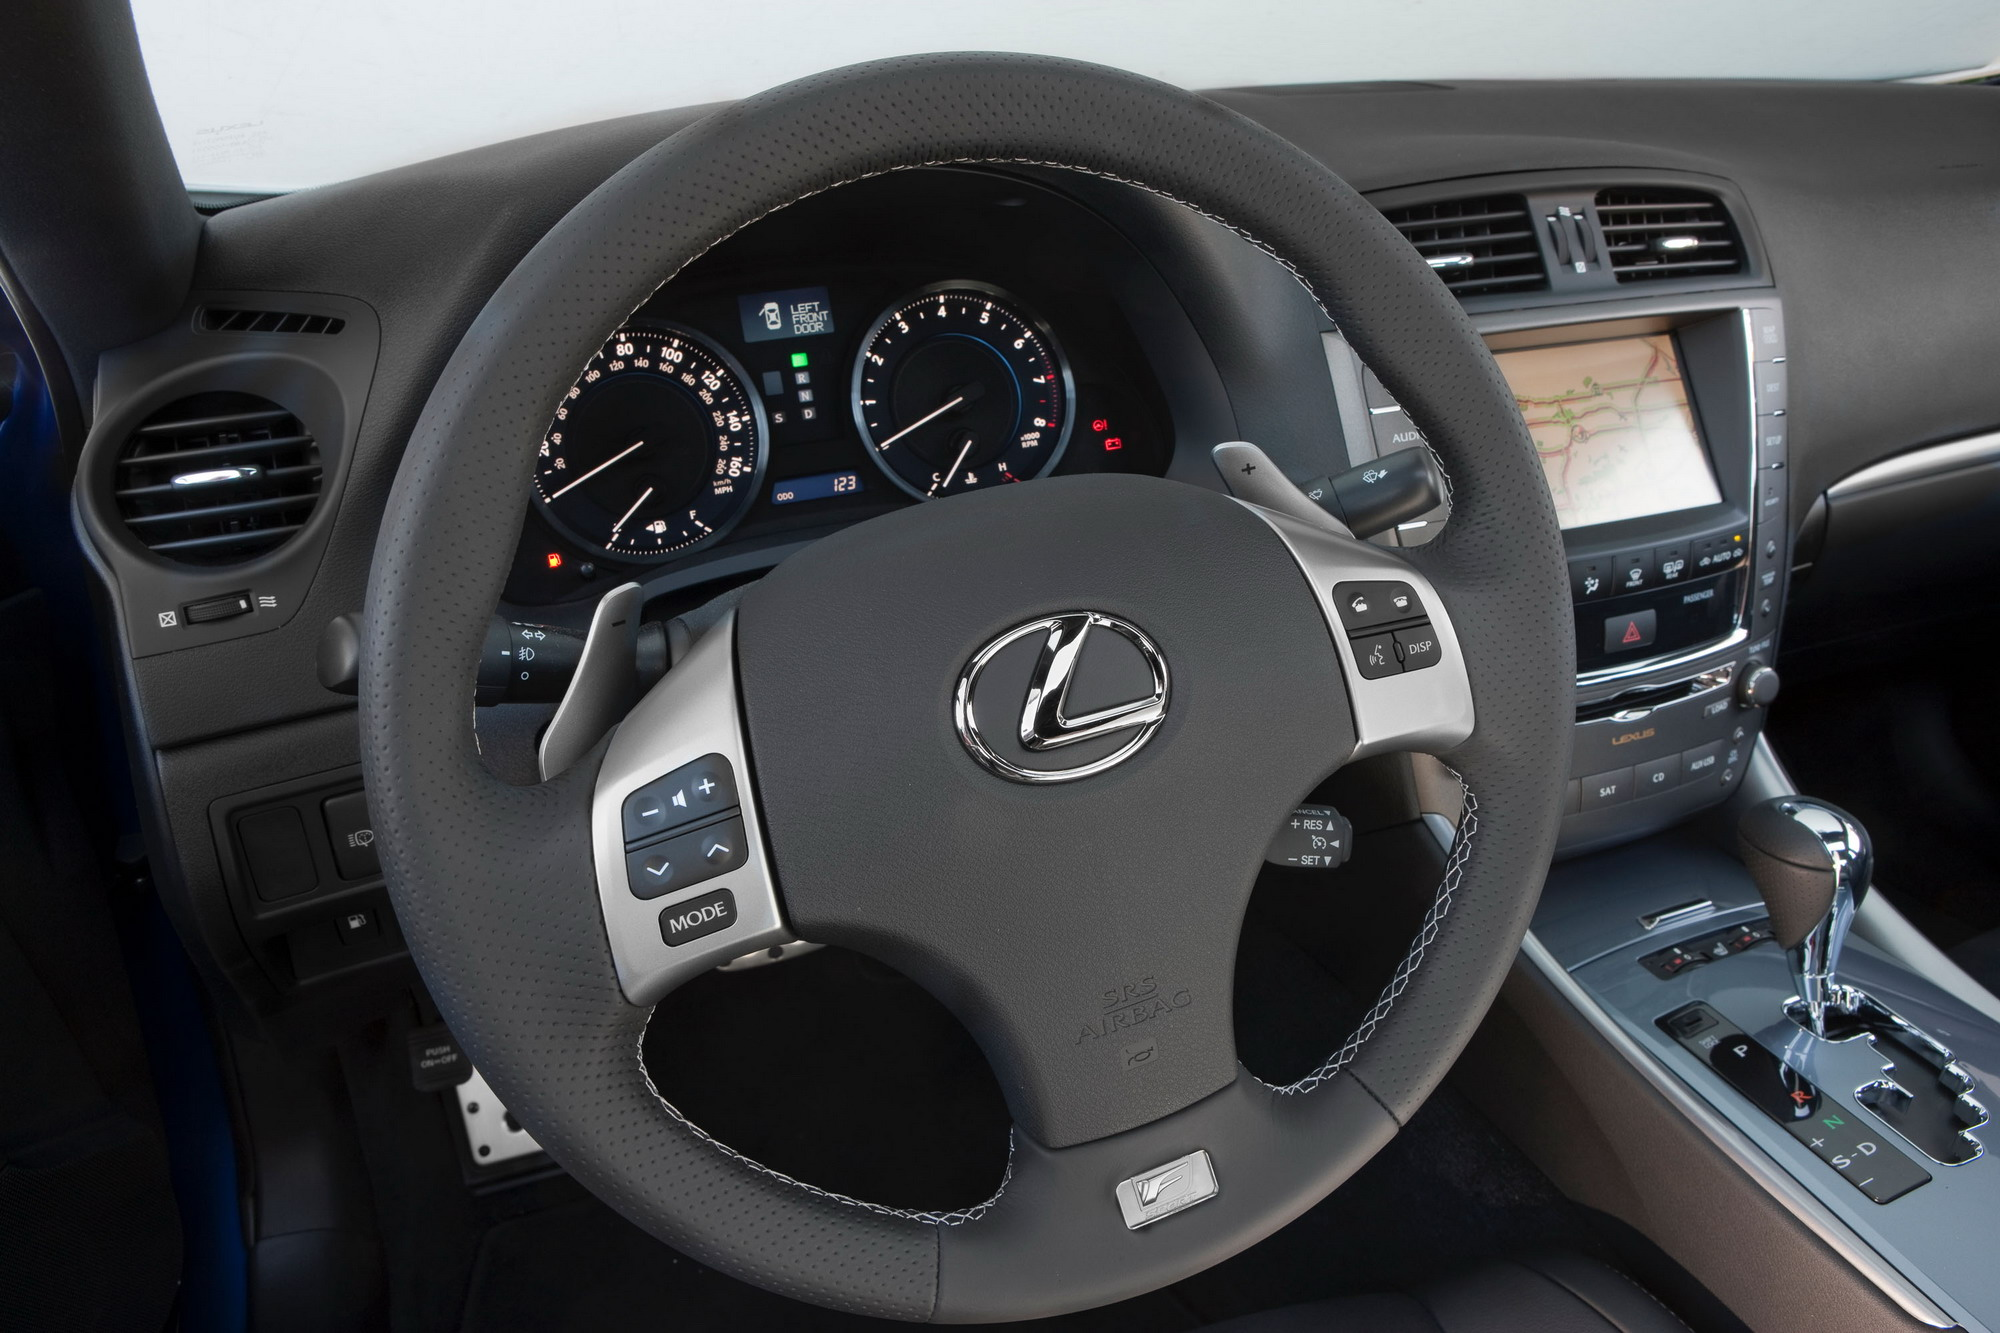 https://pictures.topspeed.com/IMG/jpg/201012/lexus-is-350-f-sport-16.jpg